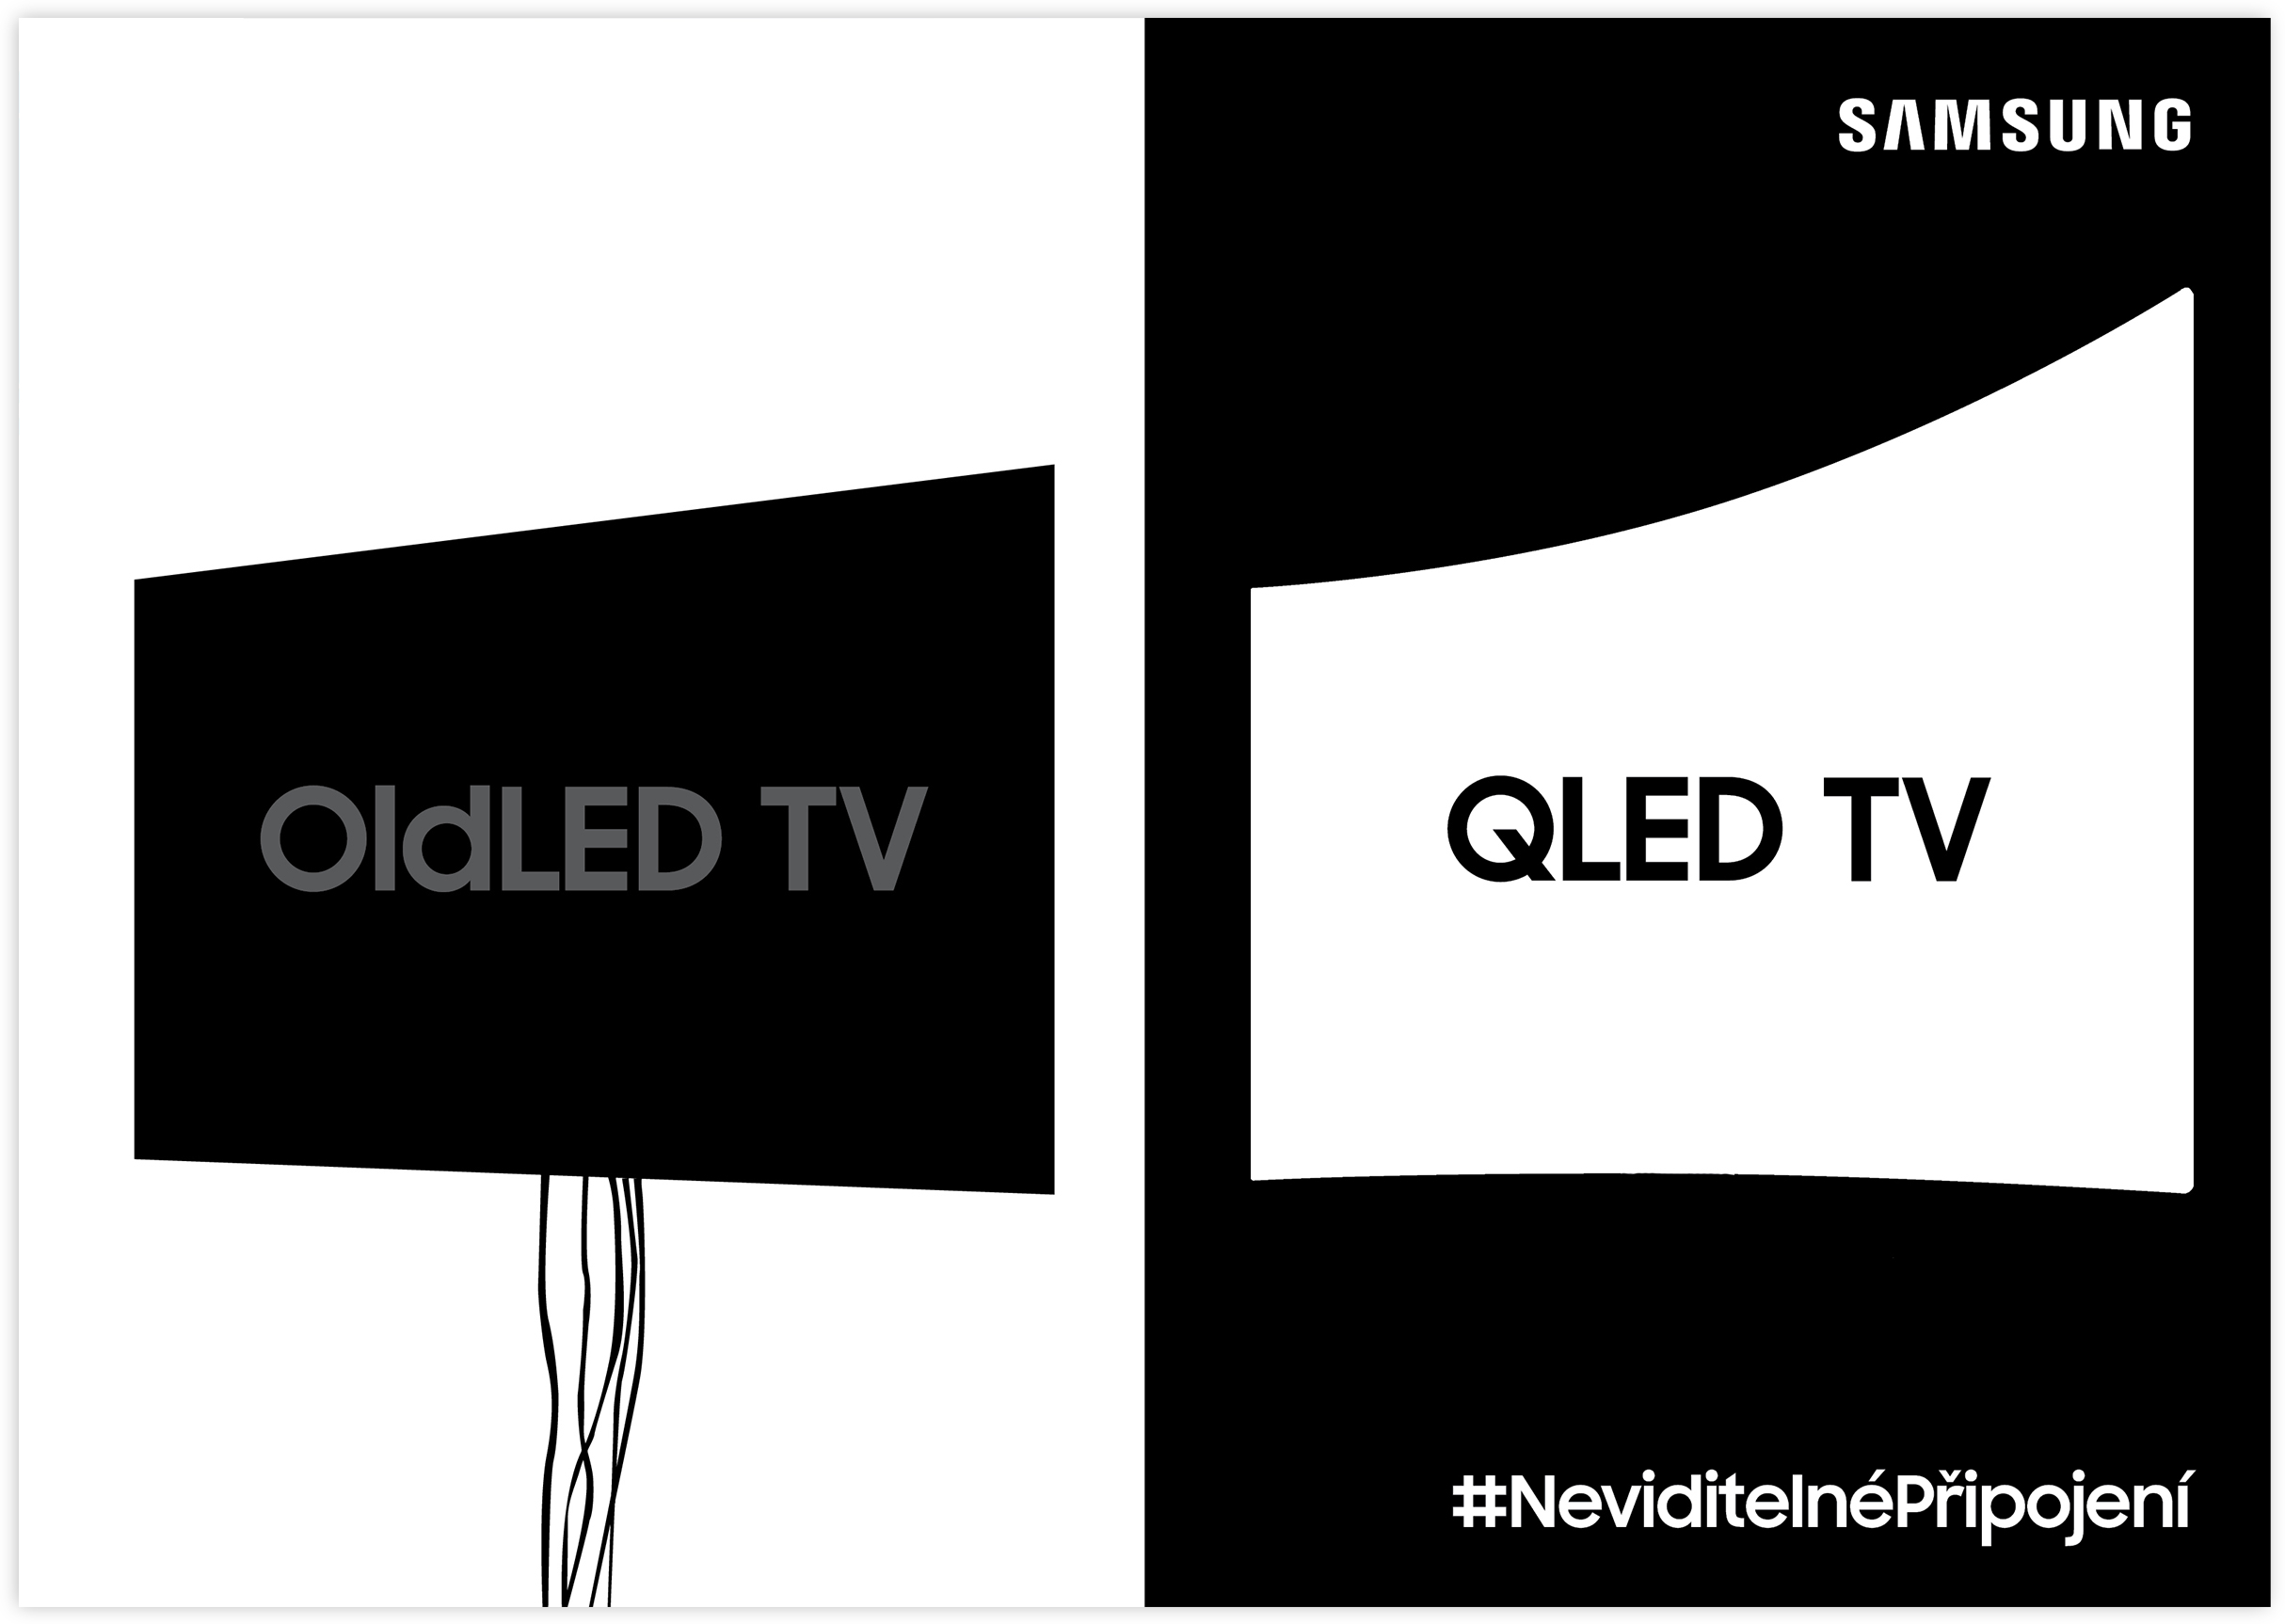 KV 1 | Highlighting the primitive wiring management system of an OldLED TV setup next to a refined solution from the QLED TV.